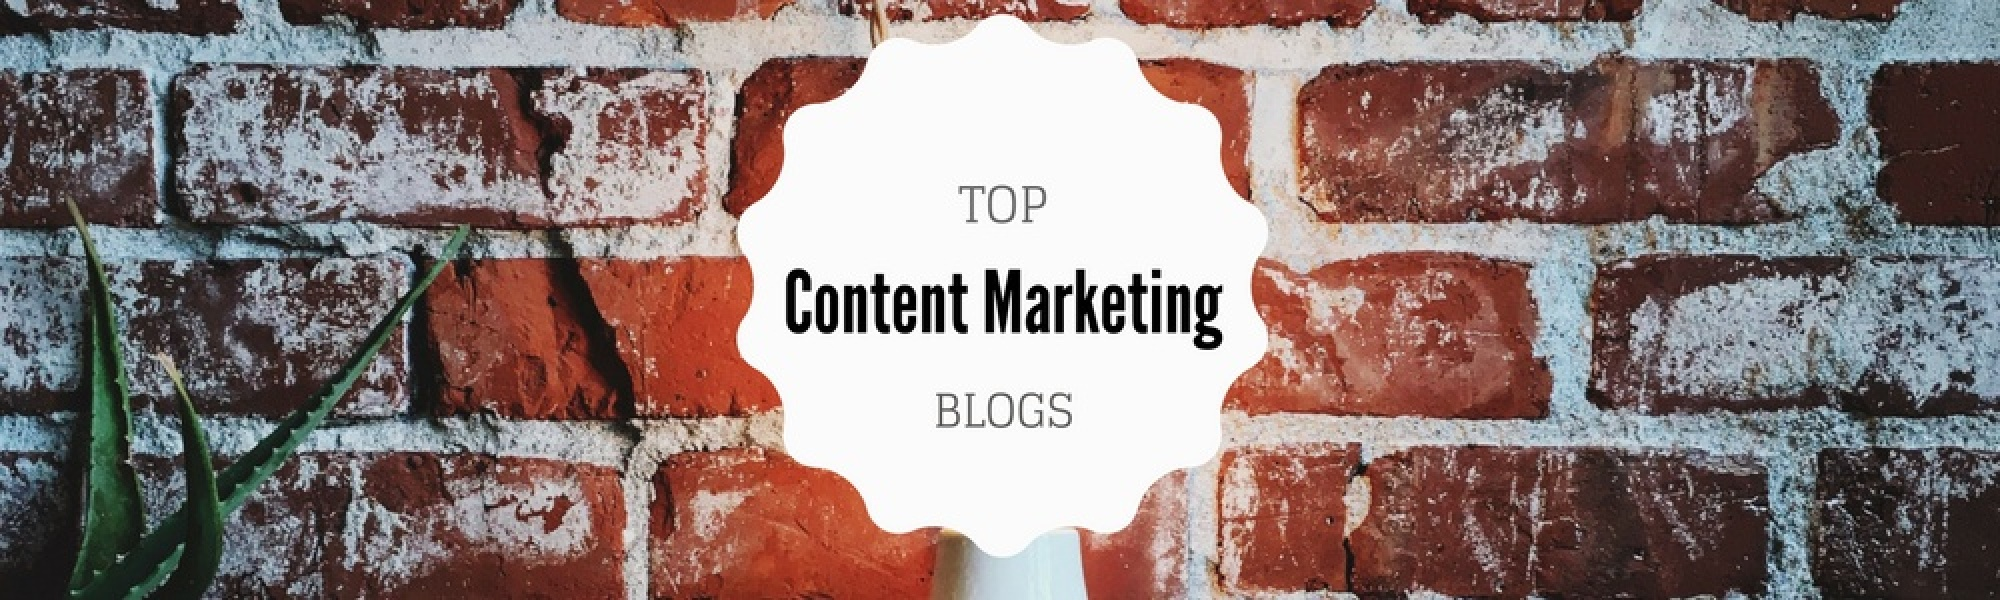 Copy of Content Marketing Blogs